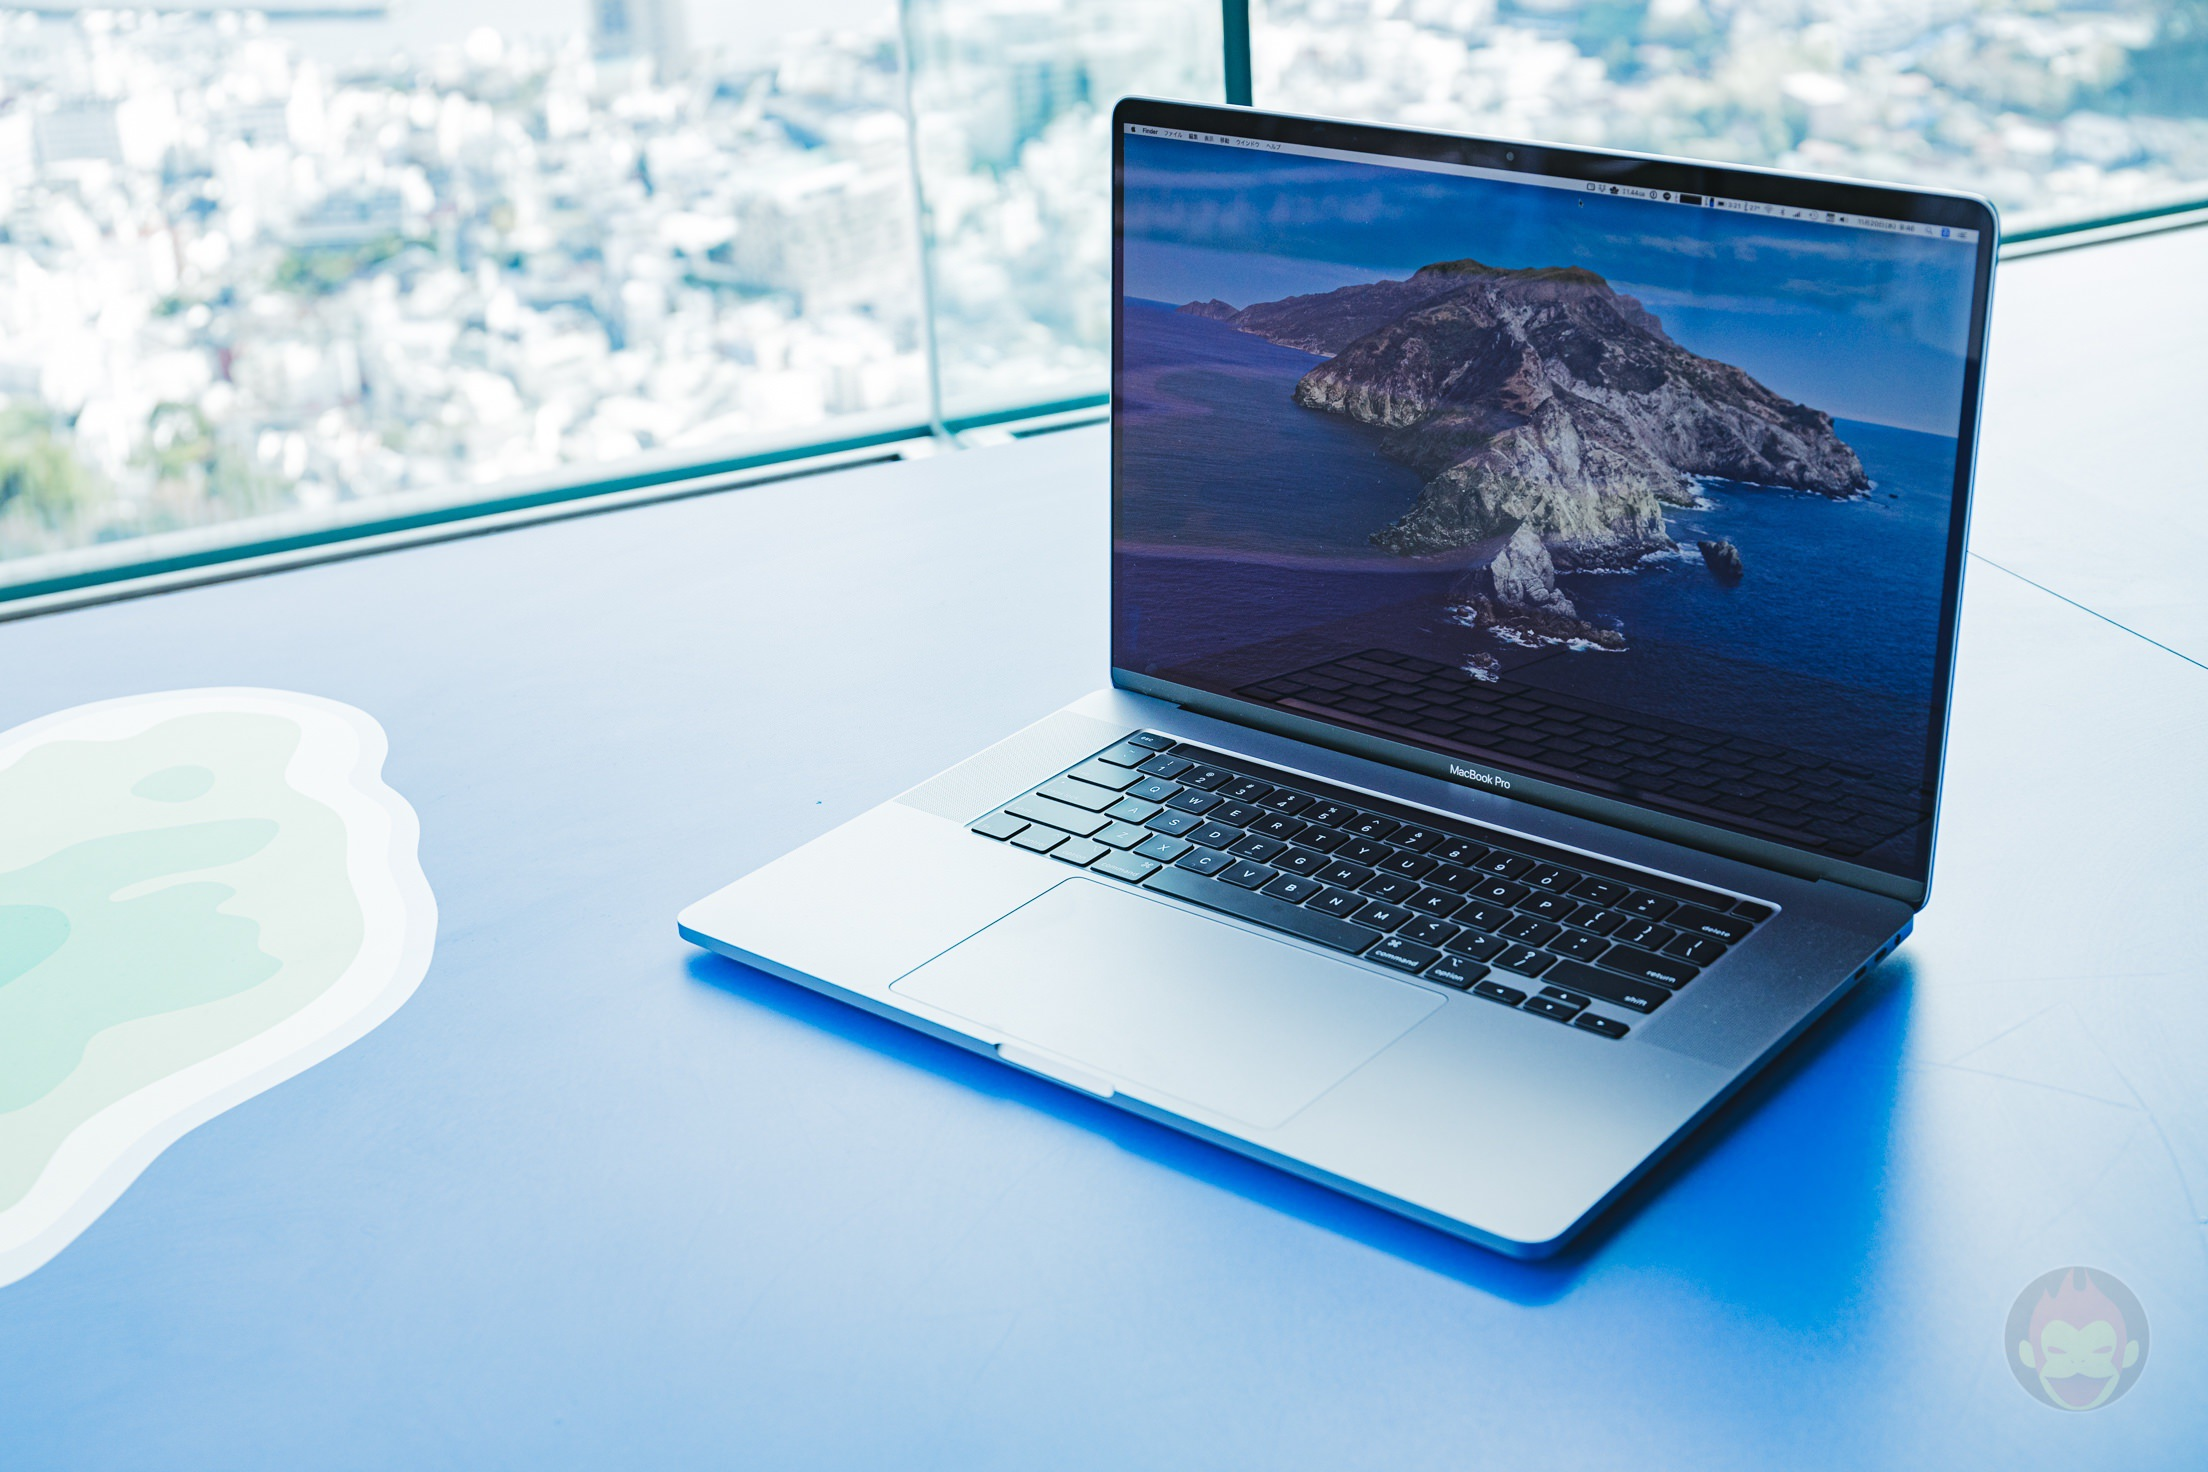 MacBook-Pro-2019-16inch-Review-BlueBackground-13.jpg